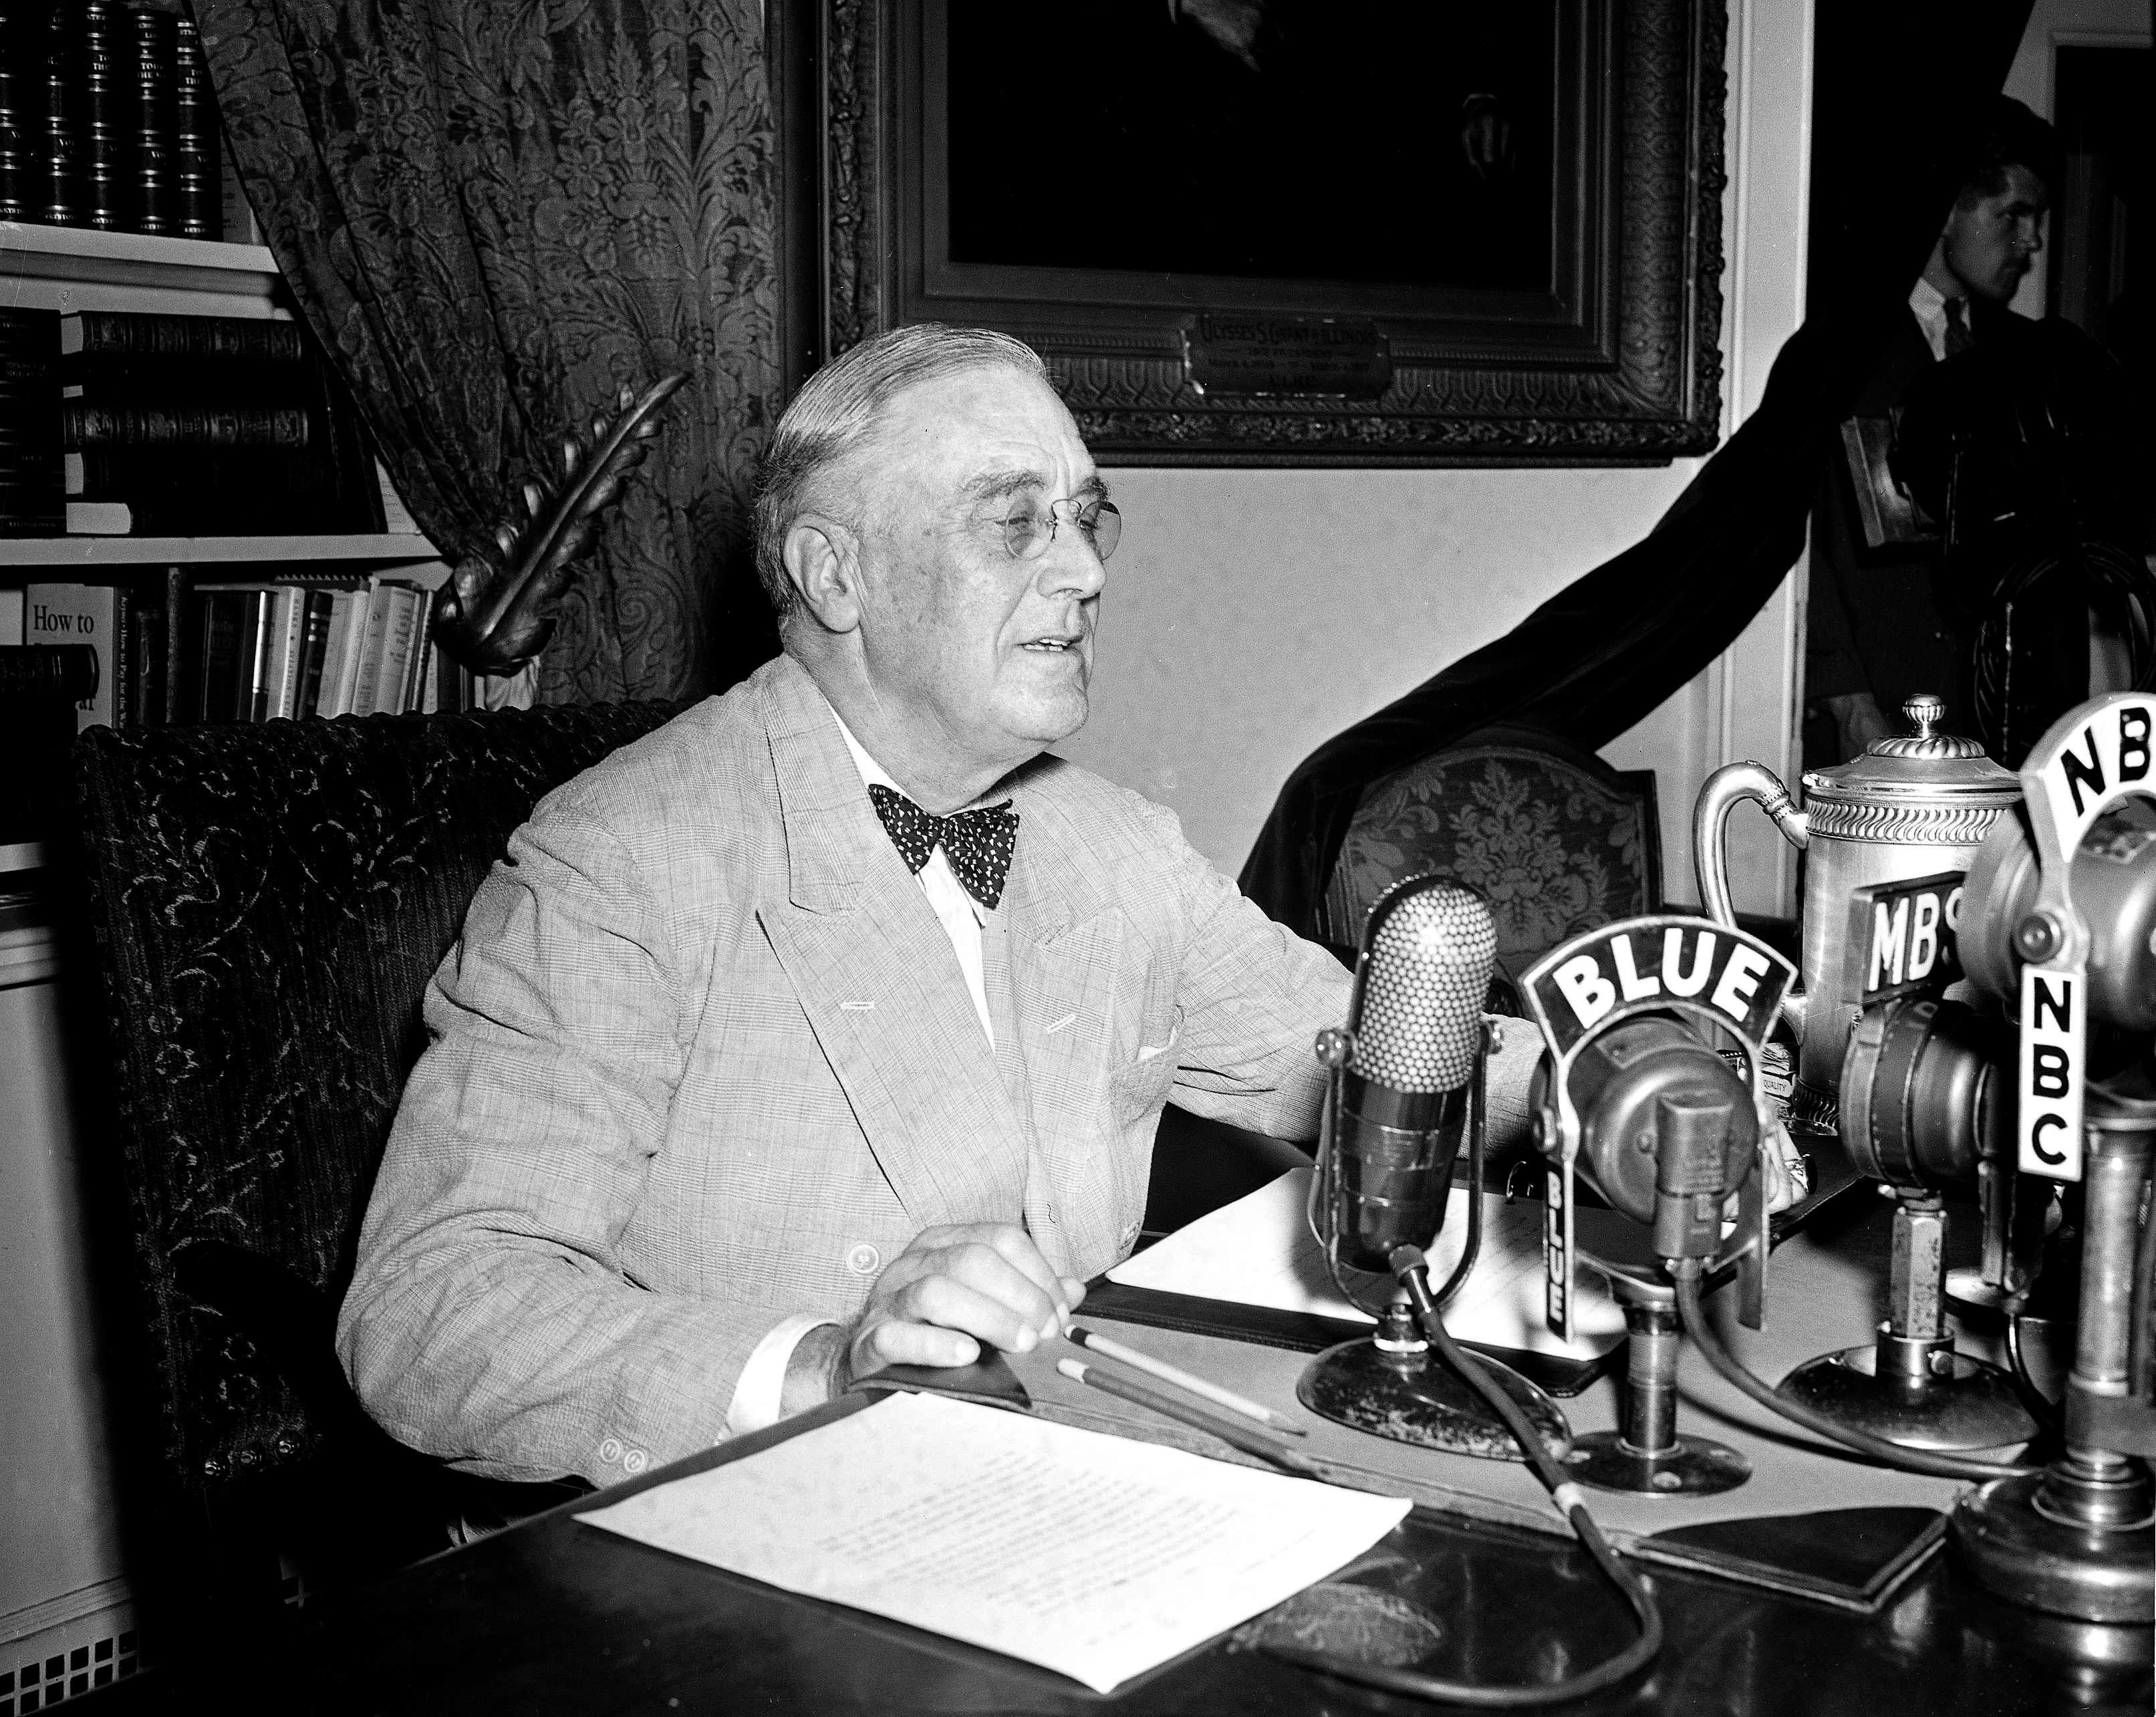 FILE - In this June 12, 1944, file photo President Franklin D. Roosevelt speaks on a national radio program from the White House in Washington. Roosevelt was diagnosed early in 1944 as suffering from high blood pressure, hypertensive heart disease, cardiac failure and acute bronchitis. (AP Photo/Eugene Abbott, File)